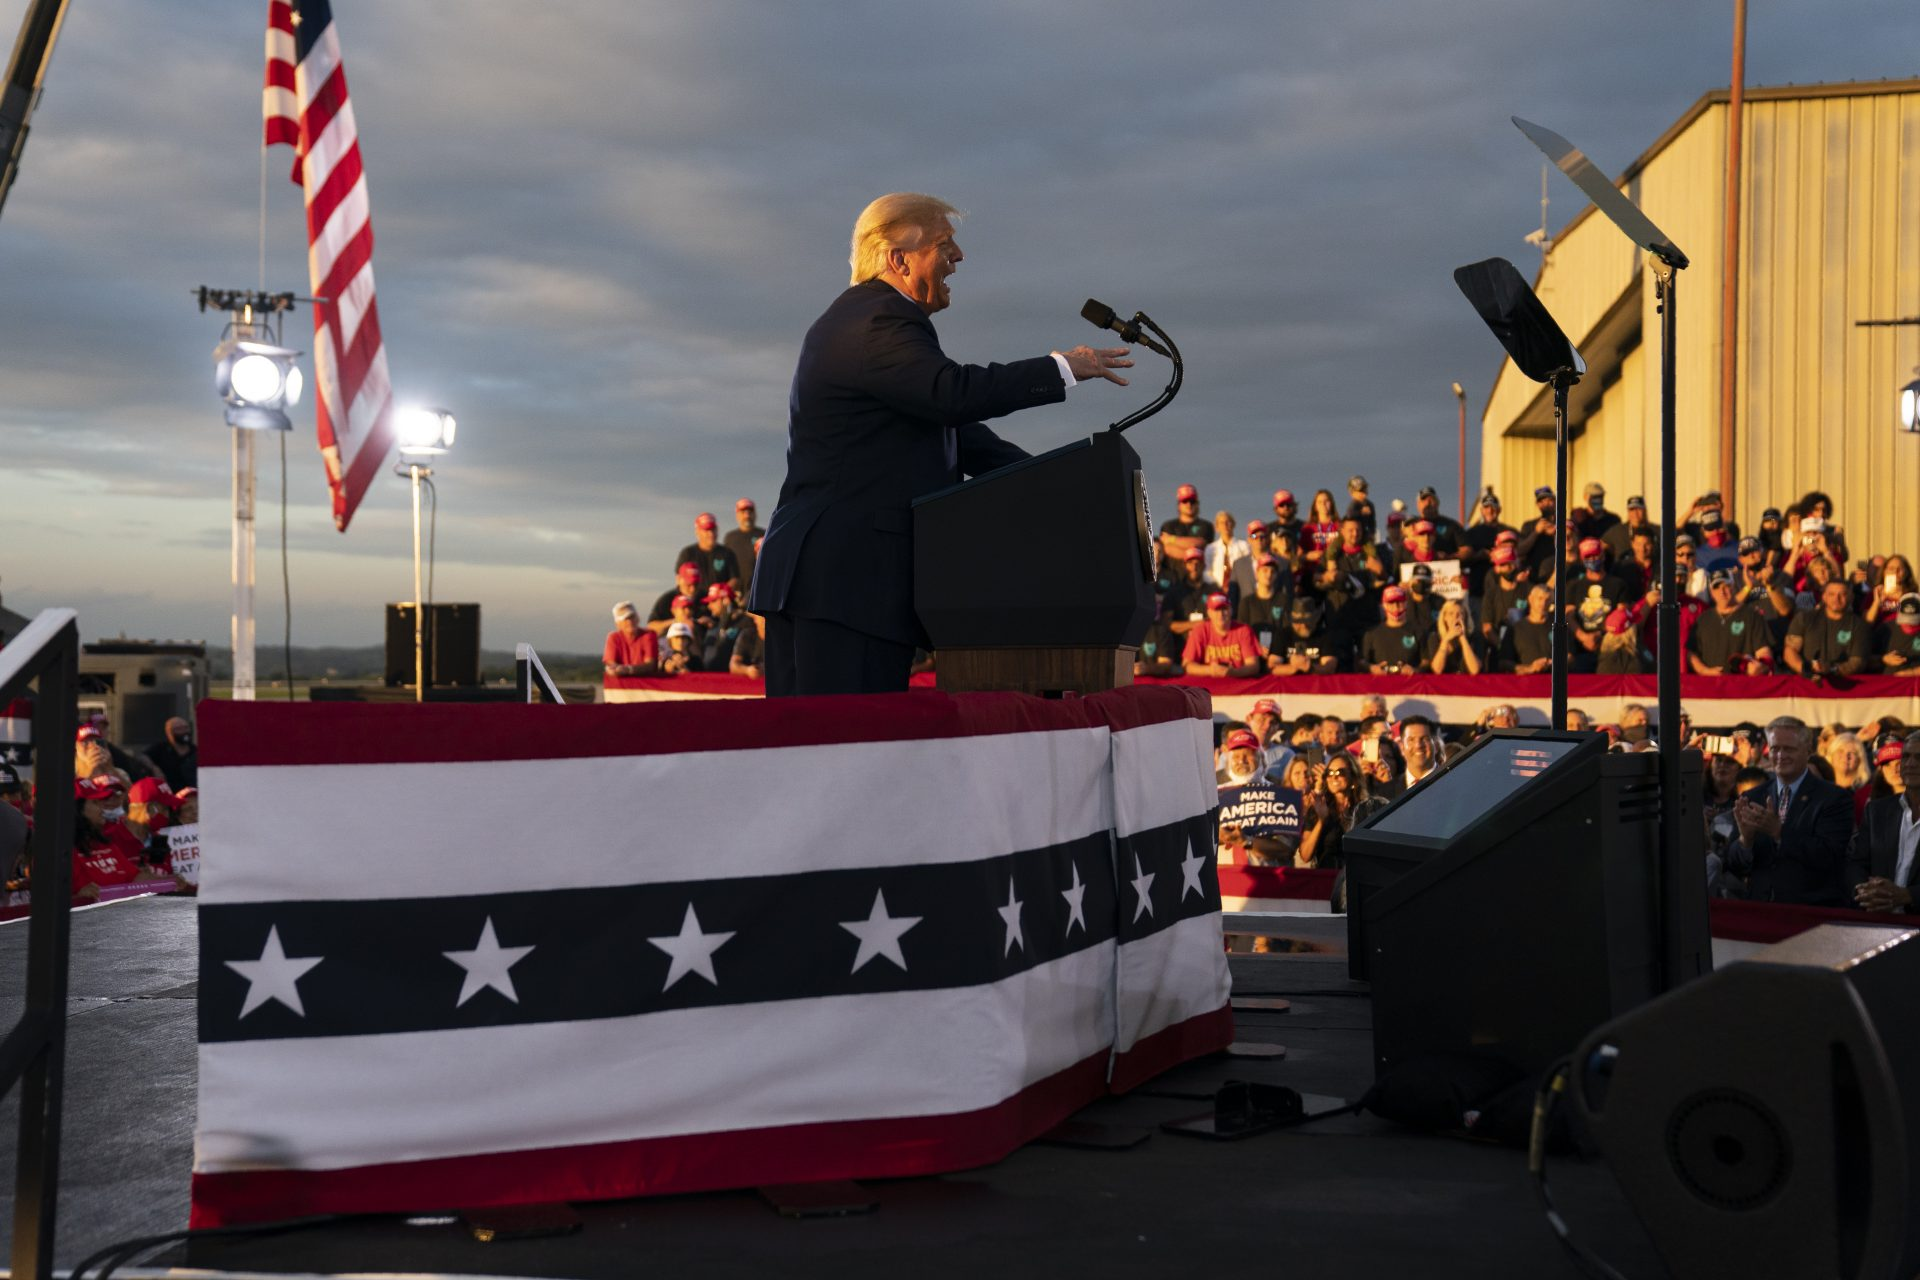 President Donald Trump speaks during a campaign rally at Arnold Palmer Regional Airport, Thursday, Sept. 3, 2020, in Latrobe, Pa